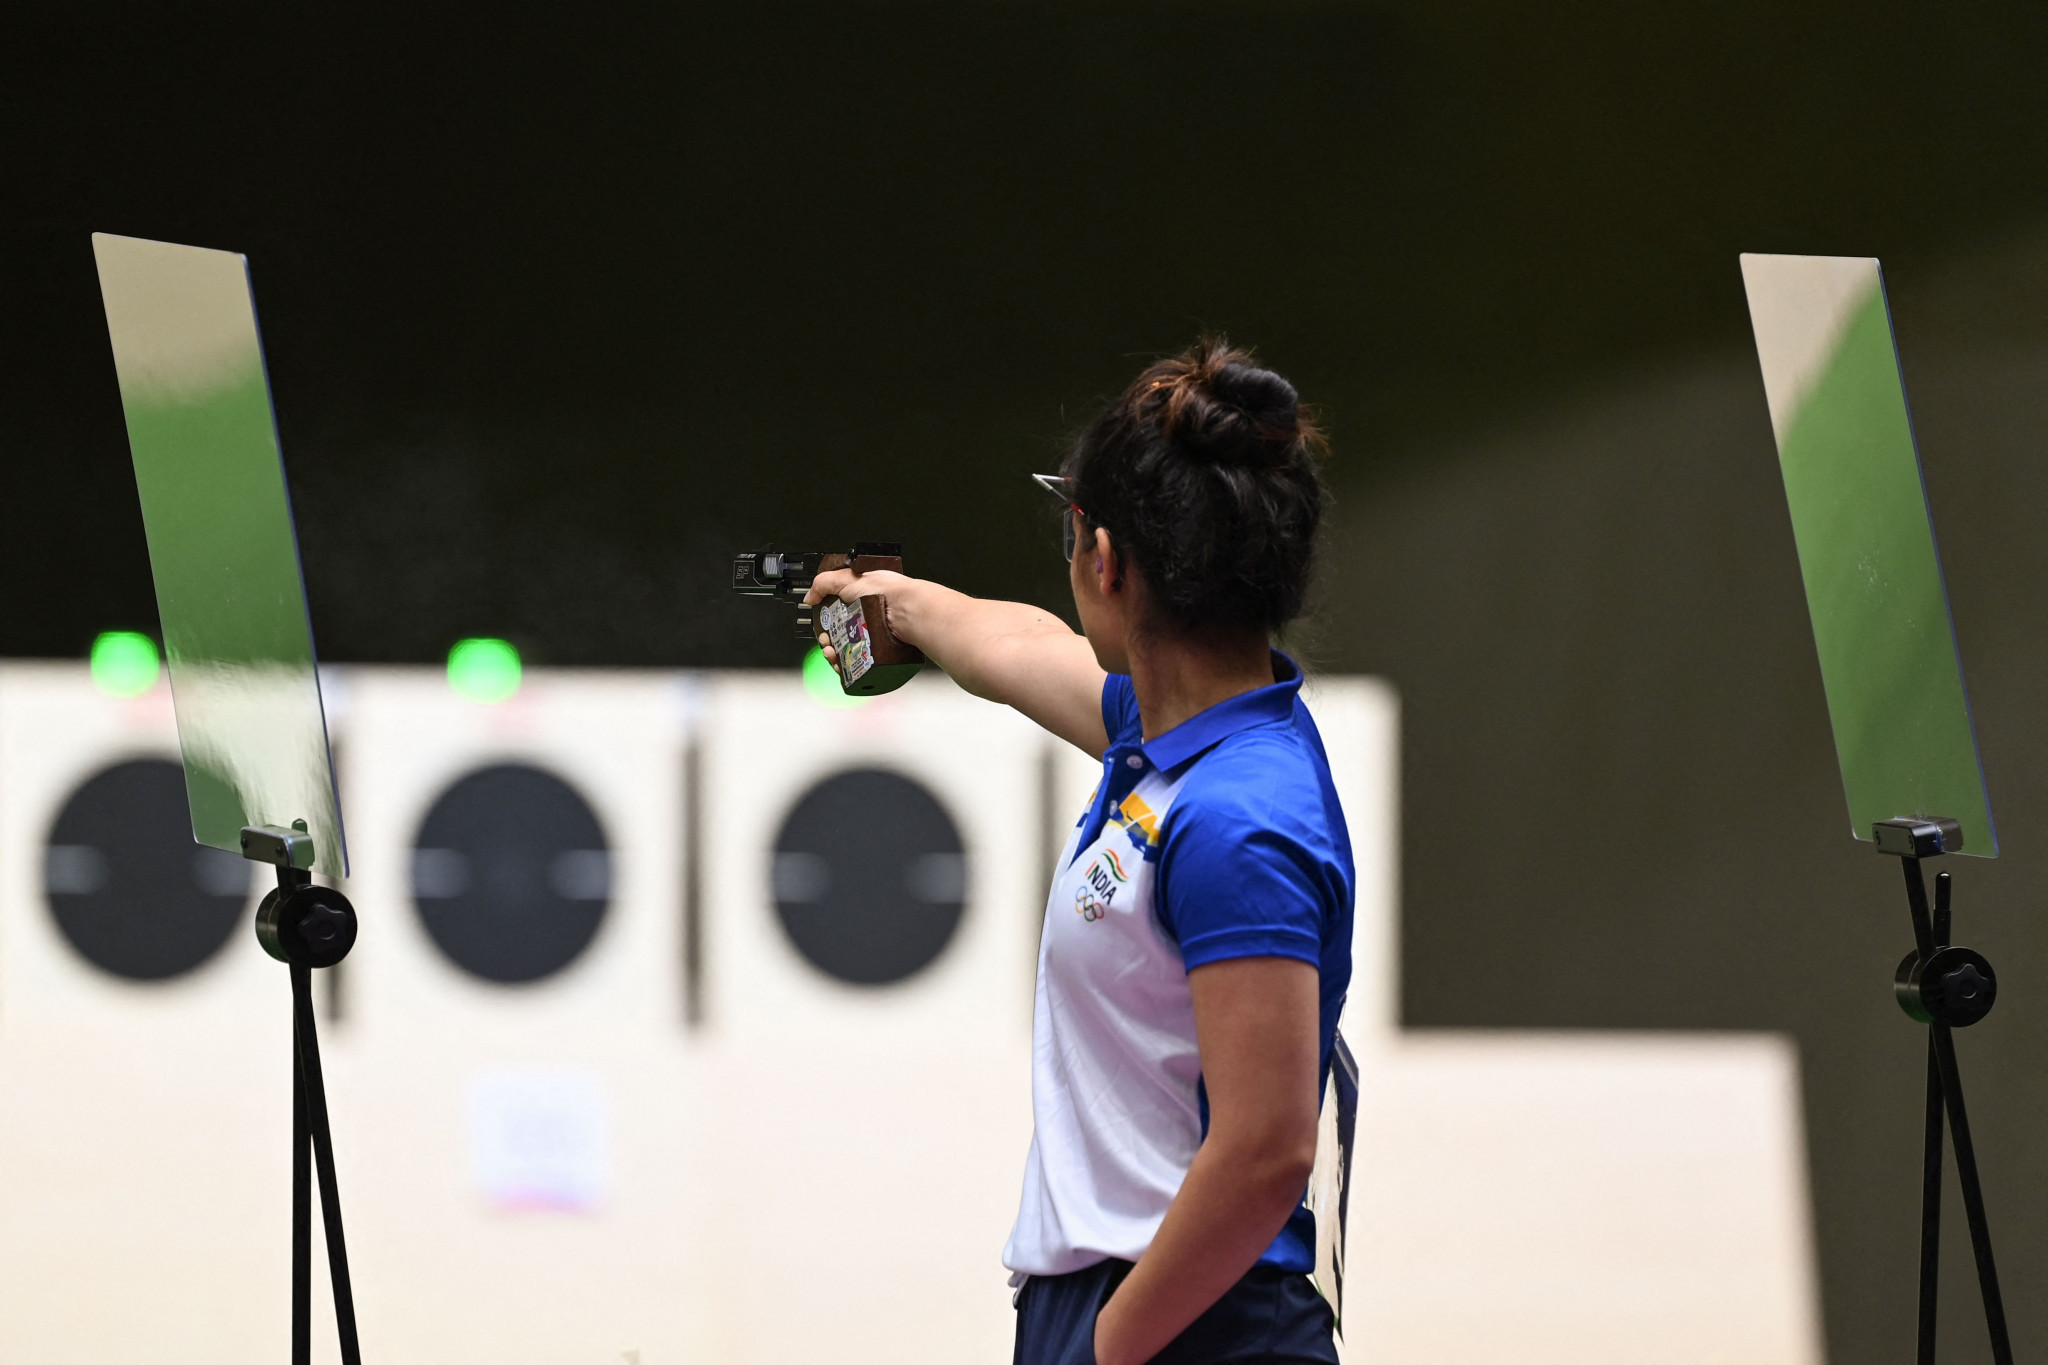 Tomar's junior world record contributes to India's eight golds at ISSF Junior World Championships